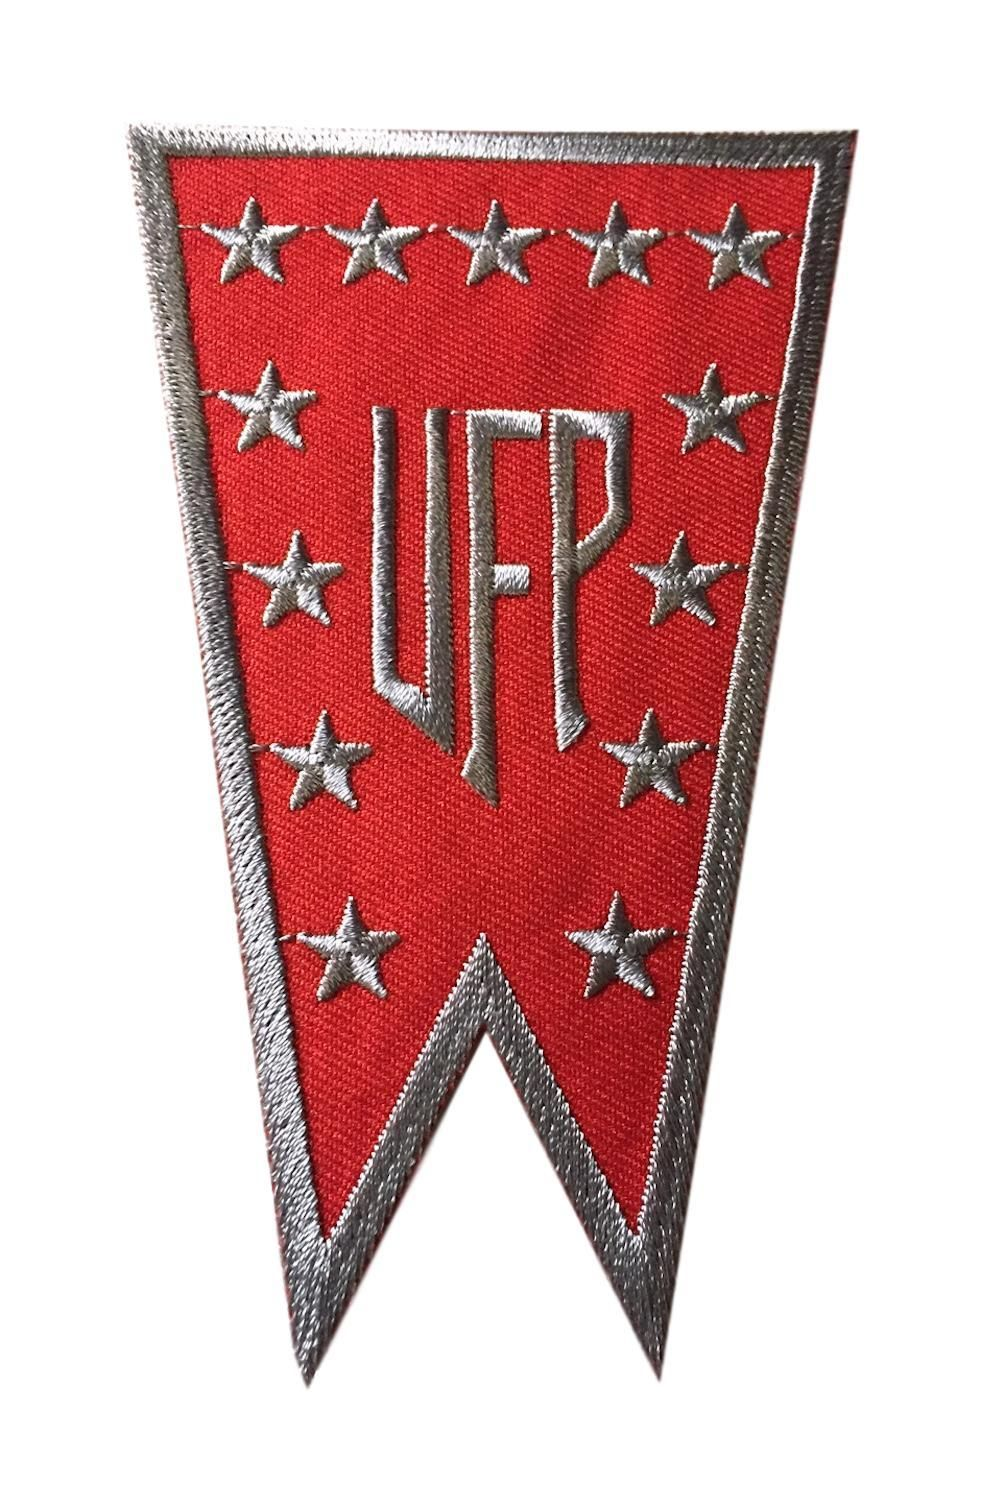 e43490783aa Star Trek United Federation of Planets Red Banner Logo Embroidered Iron On  Cosplay Patch Patch Measures Approx. 2 7 8 Inches Wide by 4 3 4 Inches Tall  Patch ...